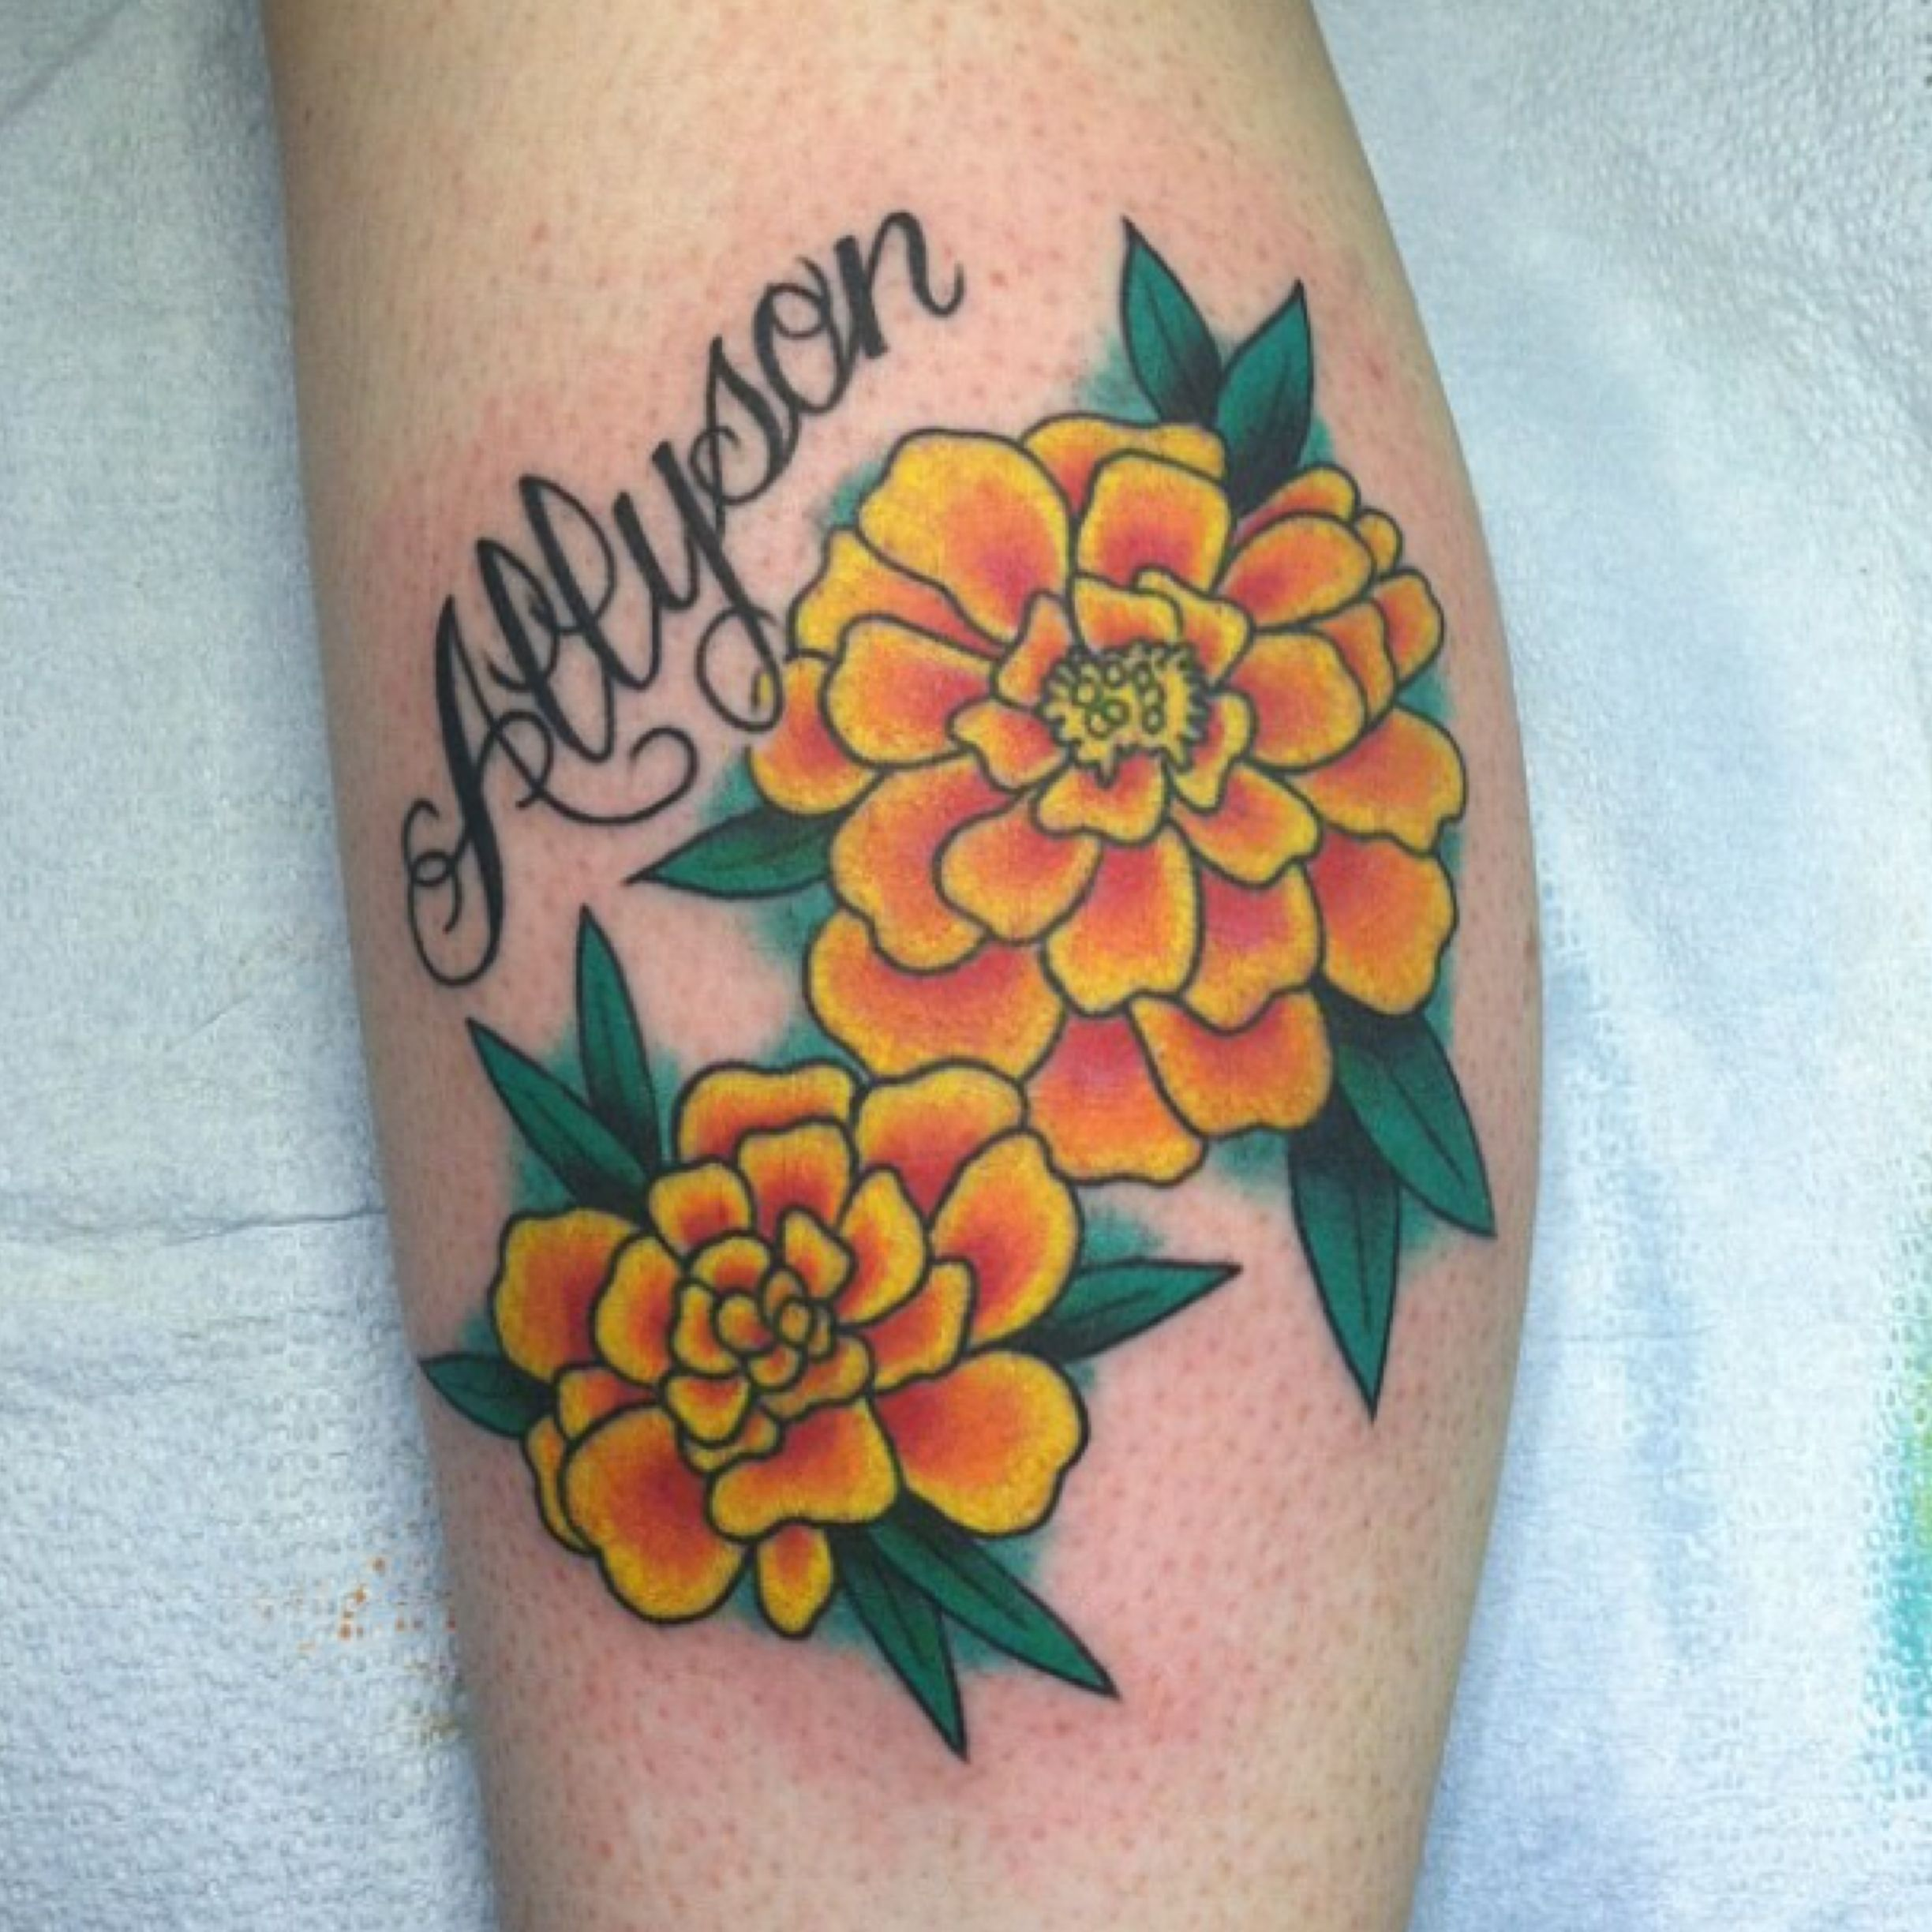 I Want Some Type Of Marigold Tattoo In Memory Of My Grandma They Are Strong And Hearty Flowers Birth Flower Tattoos Marigold Tattoo Traditional Tattoo Flowers